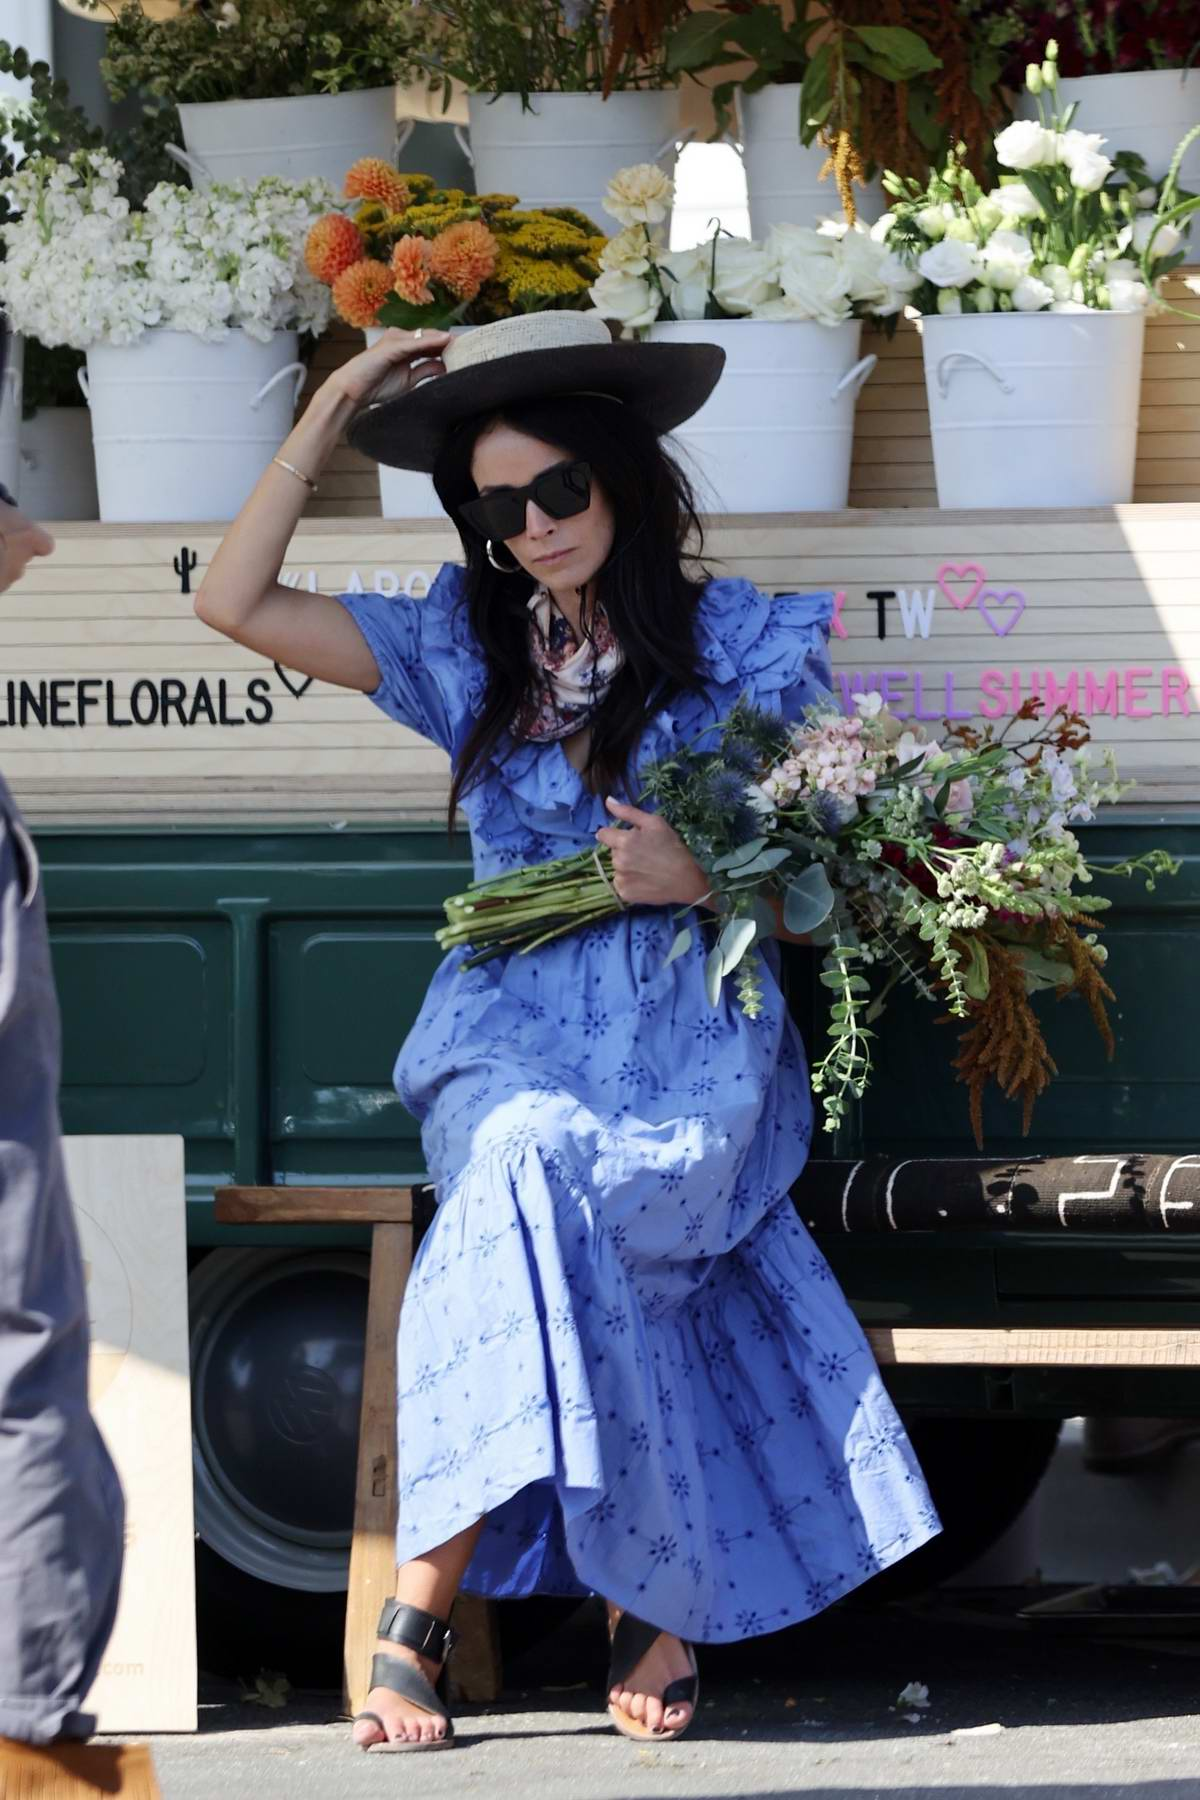 Abigail Spencer sets up her pop-up floral company at the farmer's market in Montecito, California